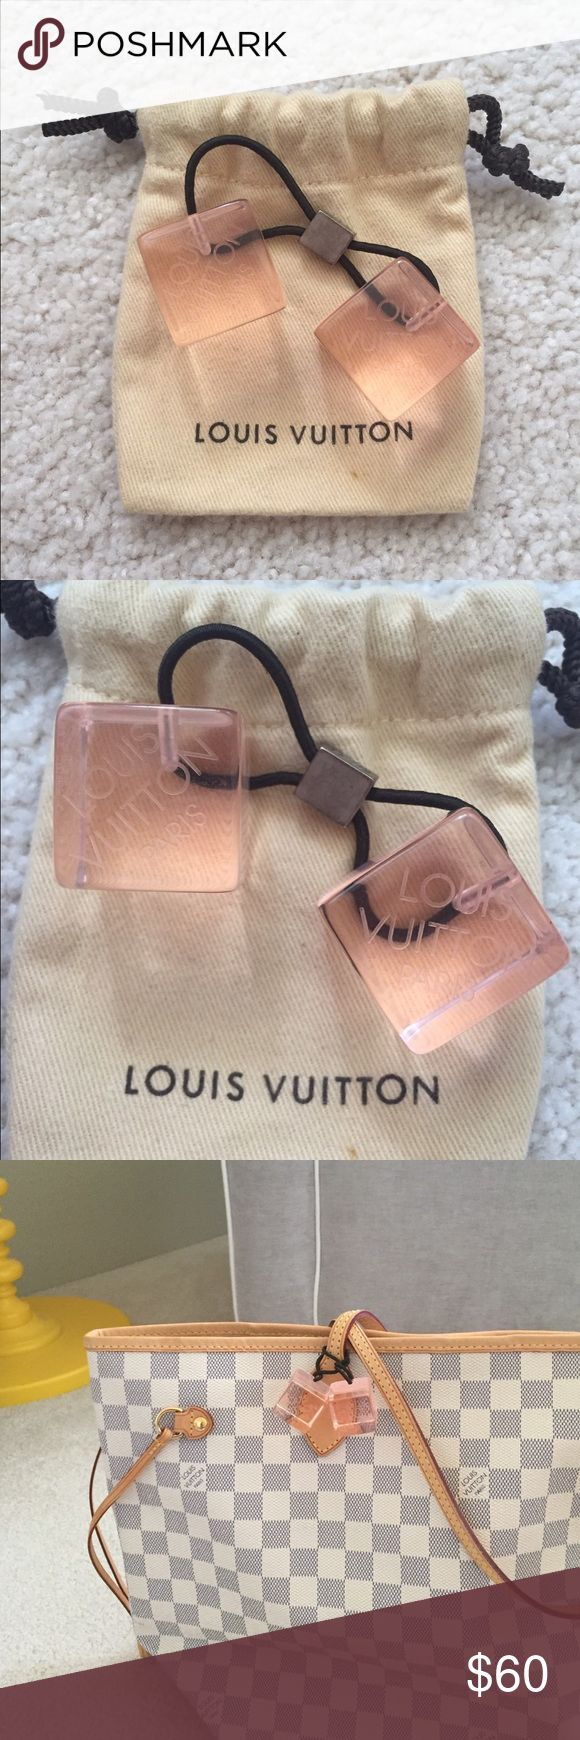 Louis Vuitton Clear Pink Hair Cubes 100% Authentic Louis Vuitton Hair Cubes. 1 hair cube only. Was originally sold as a pair. Elastic still in good condition, not stretched out. Cute in hair, works as a bag charm too!! No trades. Will include the clear zippered bag it originally came in. Sorry does not come with the dust bag that it's pictured with. Louis Vuitton Accessories